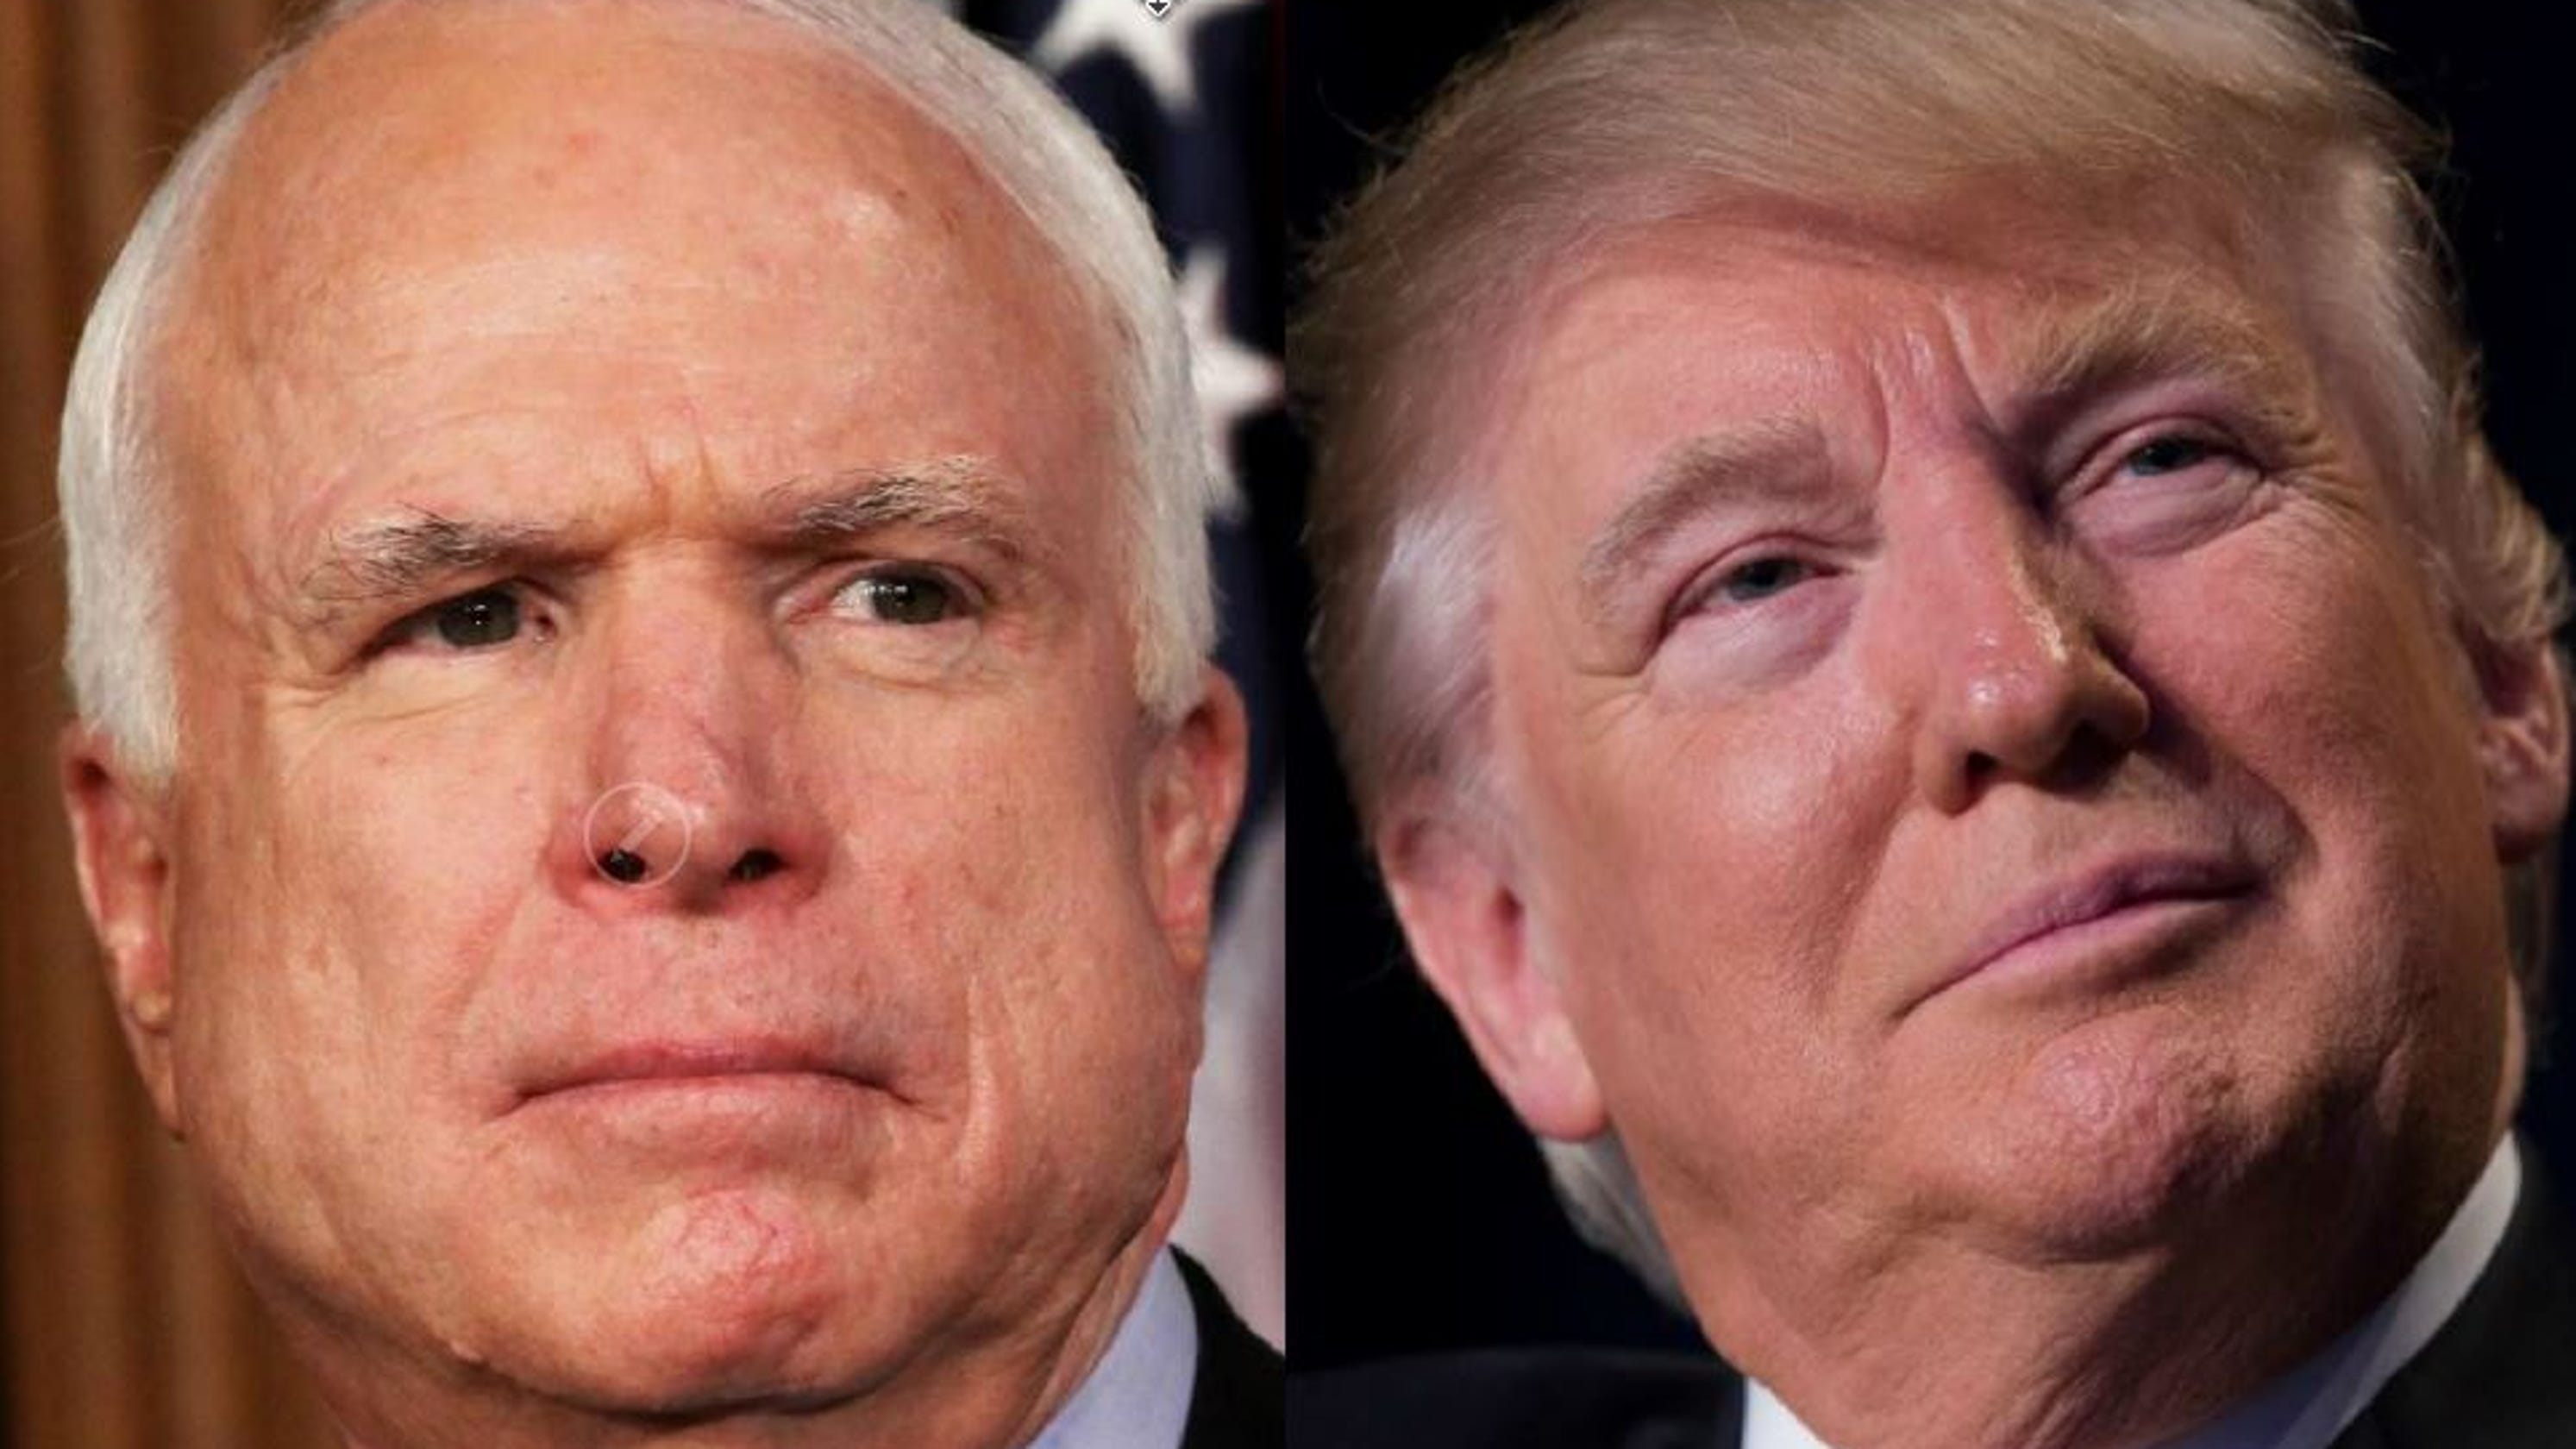 John McCain and Arizona are likely to remain a Donald Trump obsession. Here's why